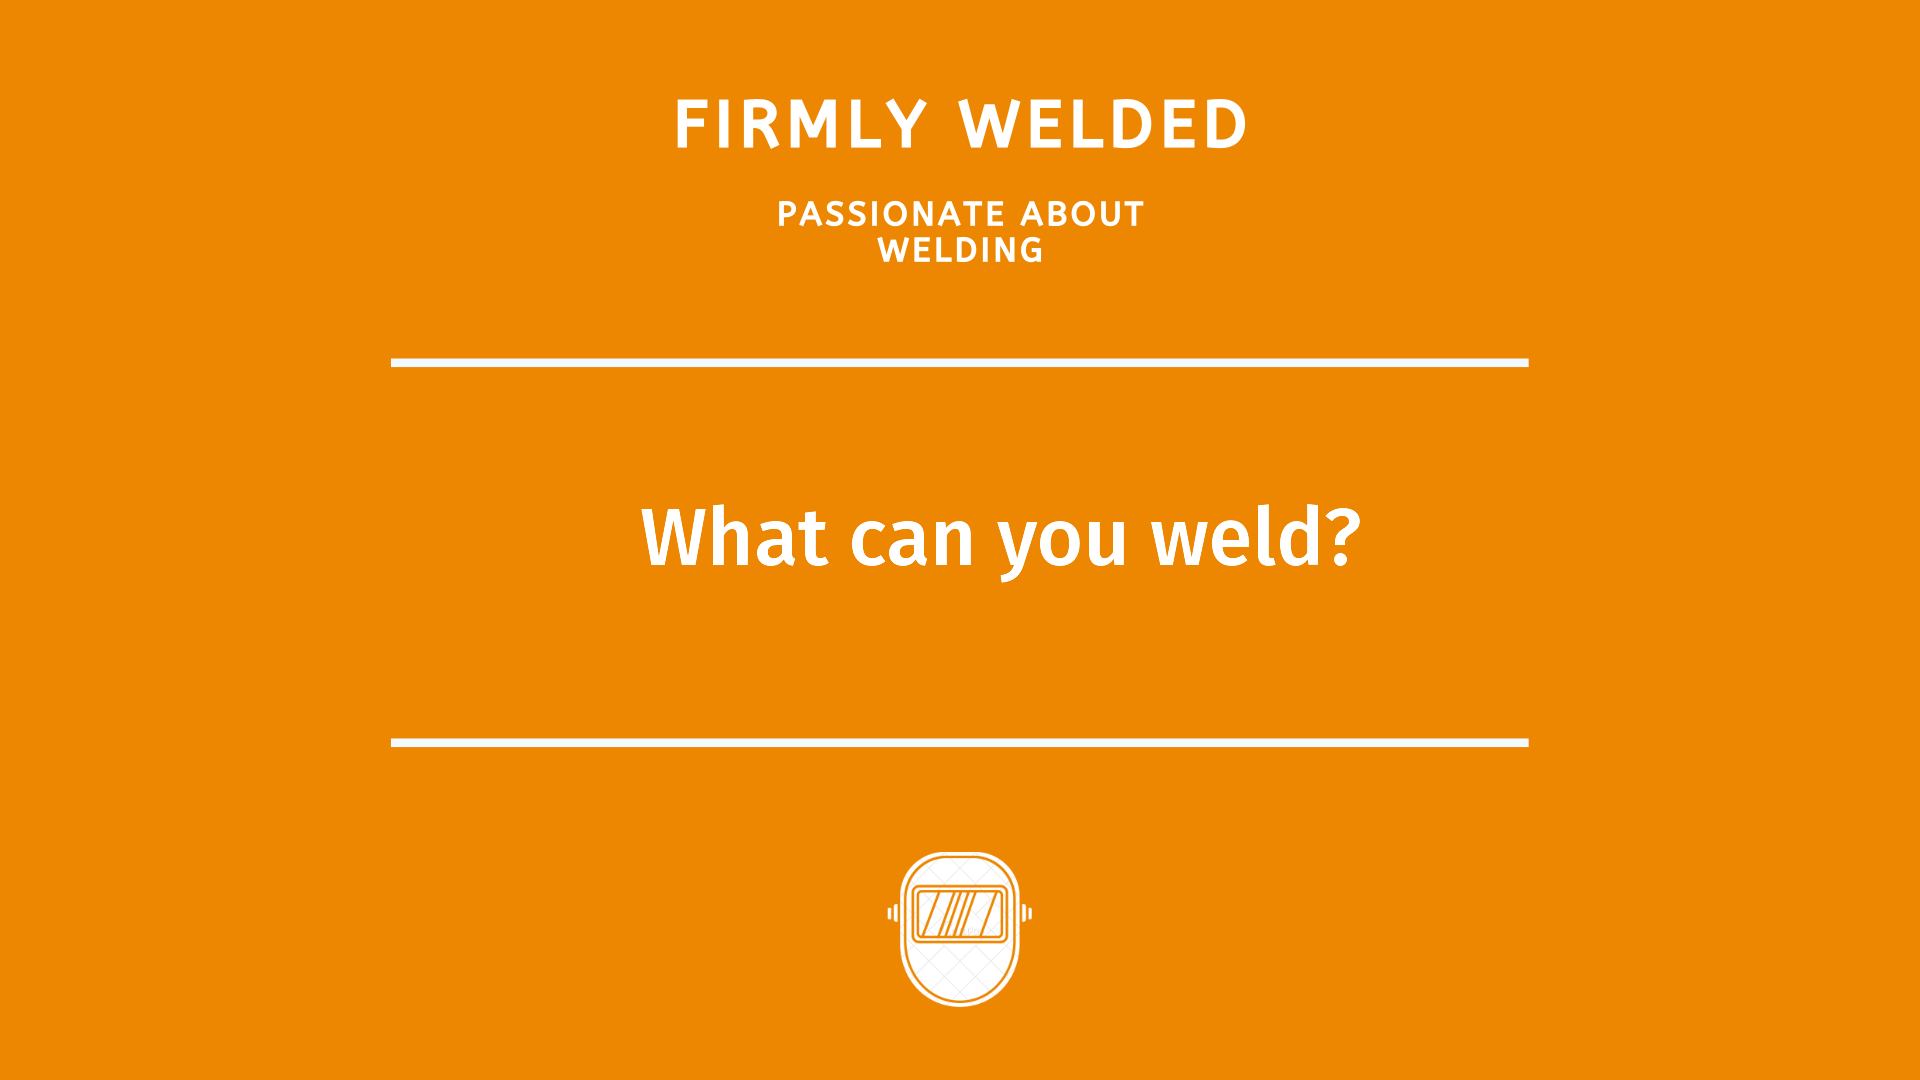 What can you weld?